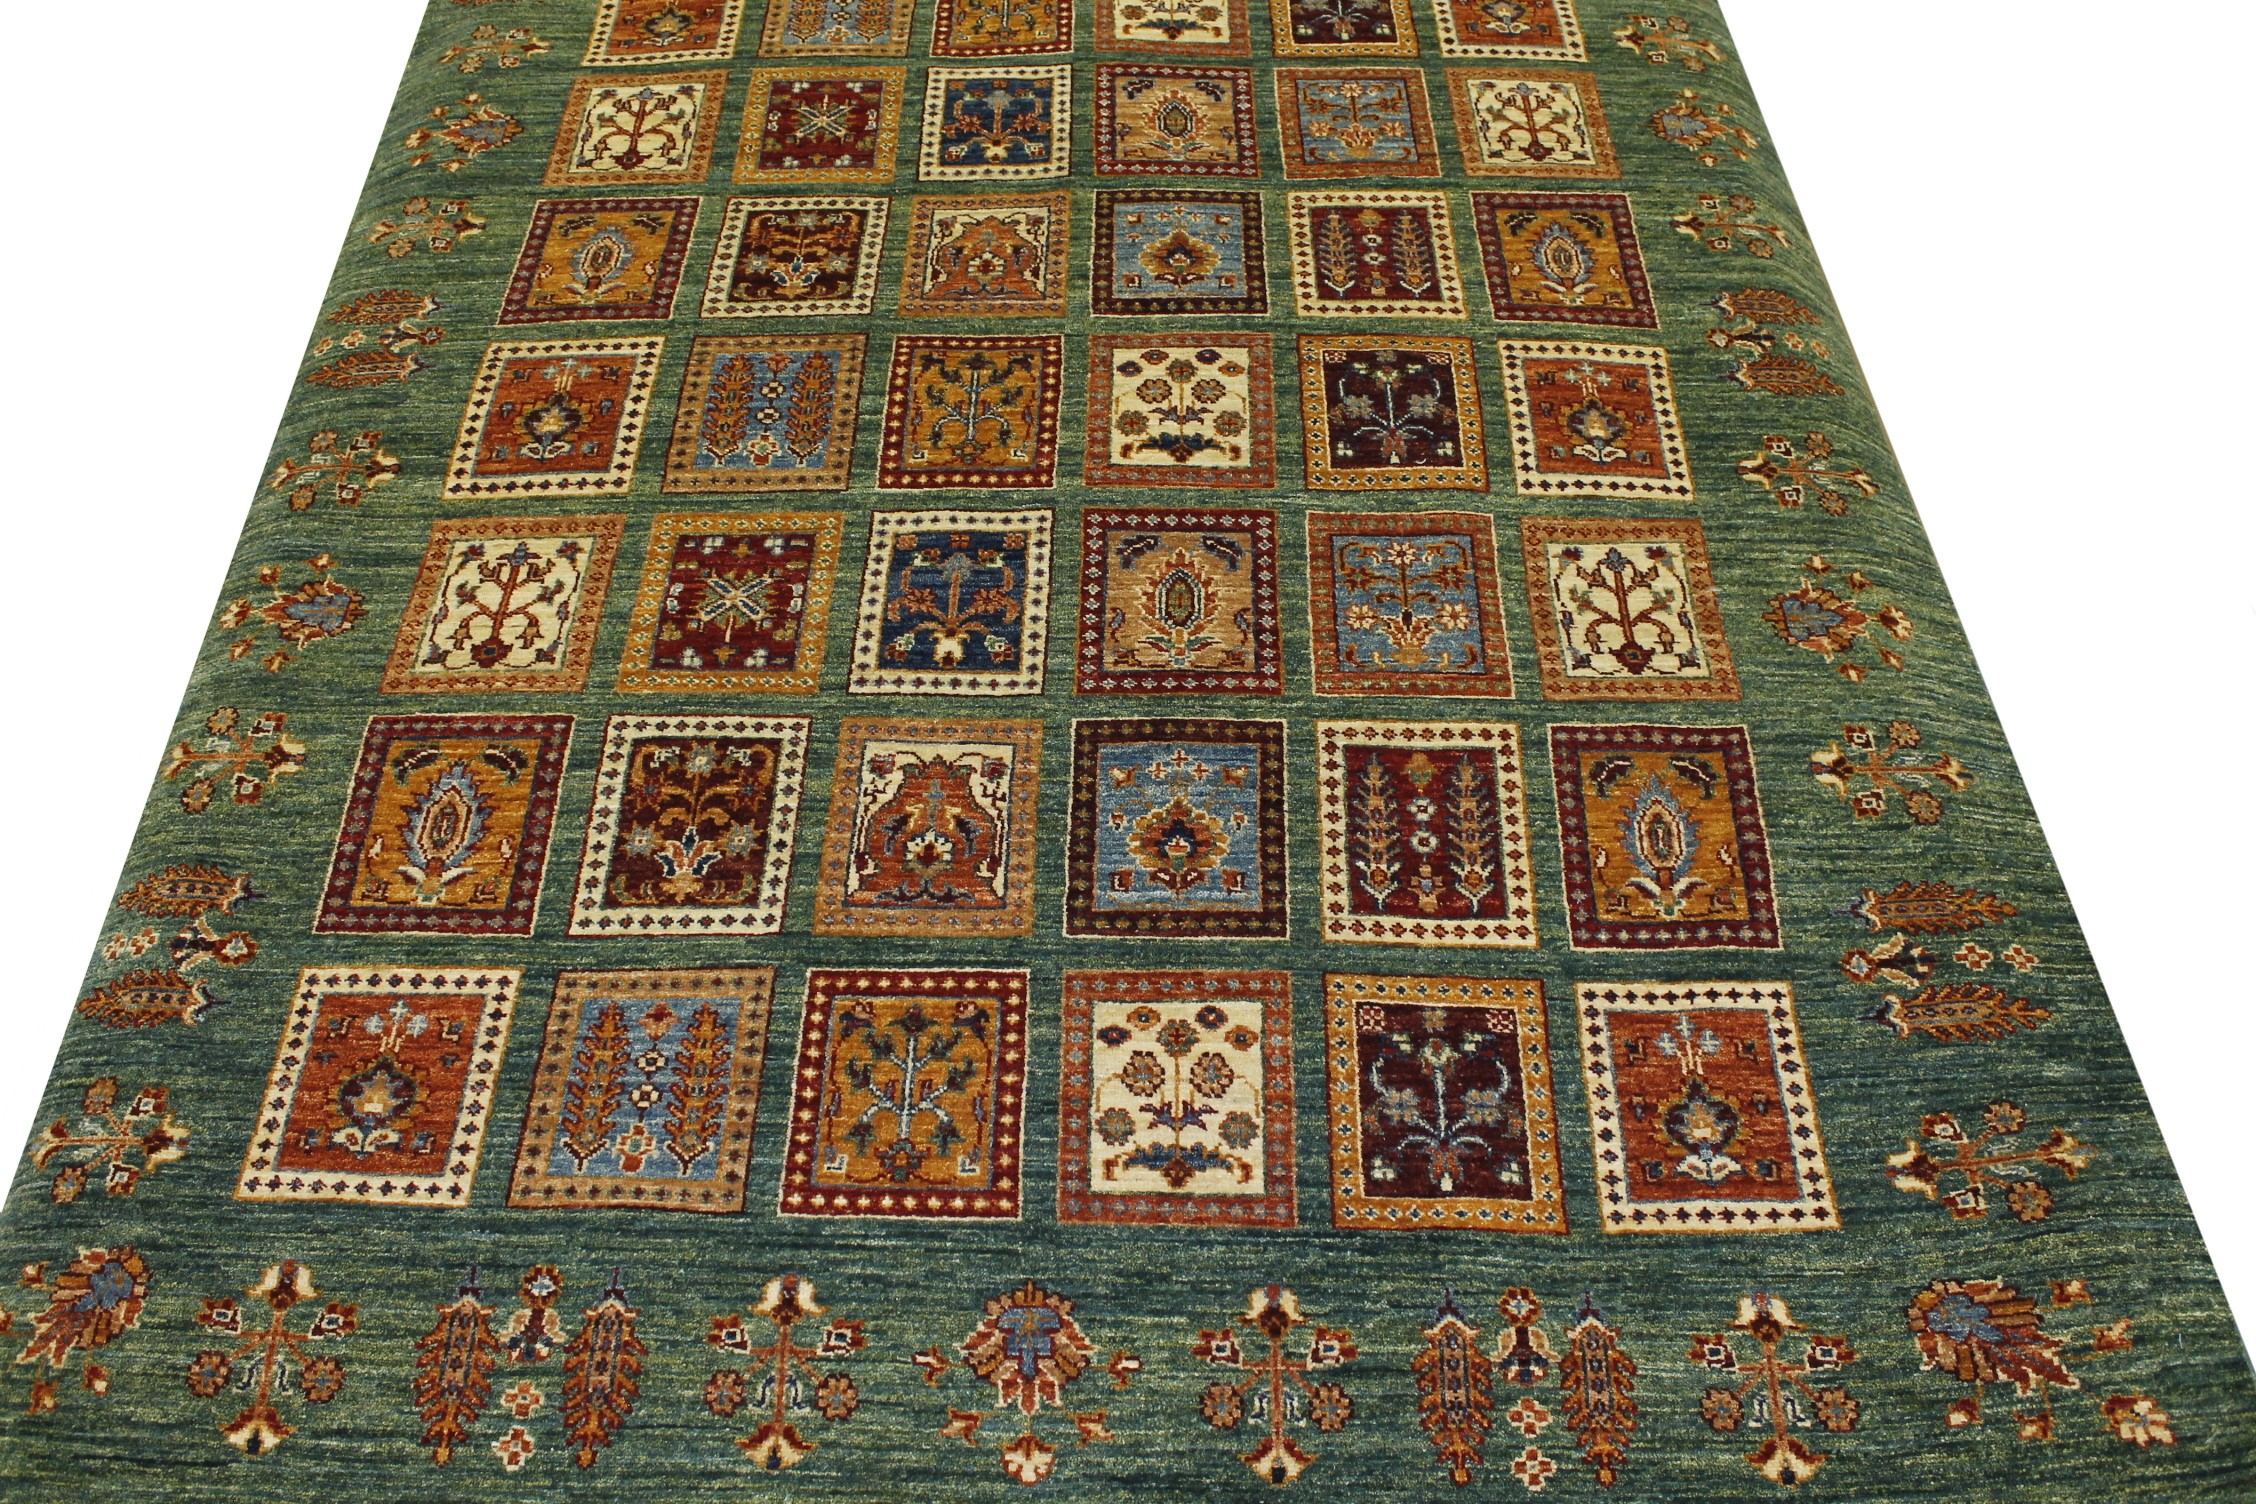 5x7/8 Antique Revival Hand Knotted Wool Area Rug - MR19576